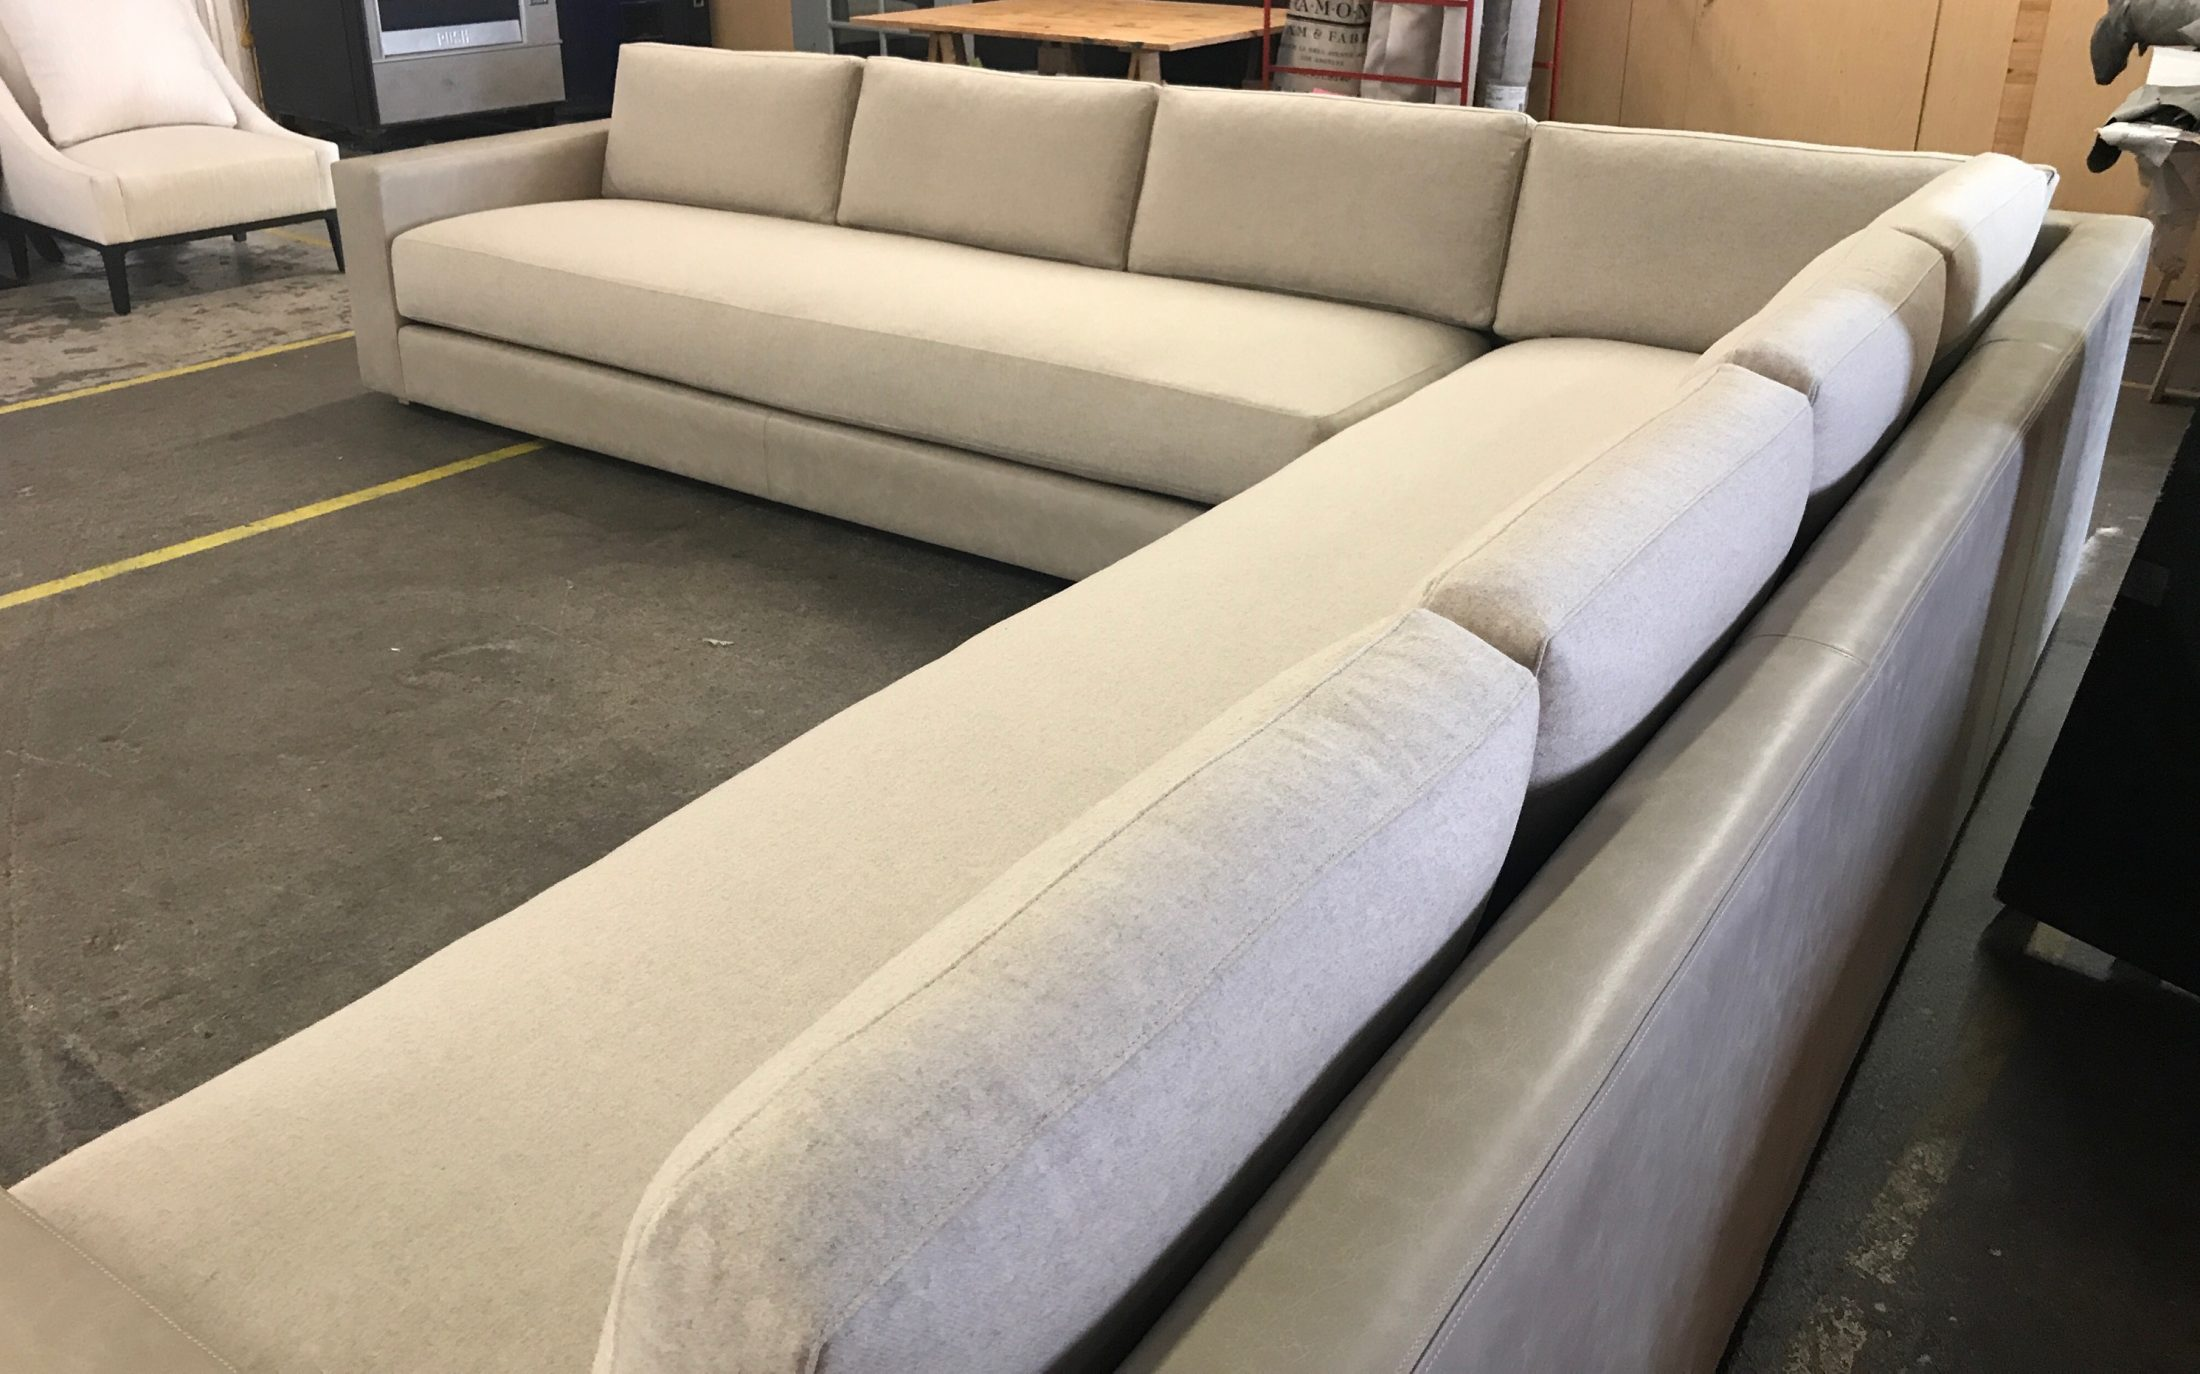 Swell Lola Sectional Arden Home Caraccident5 Cool Chair Designs And Ideas Caraccident5Info